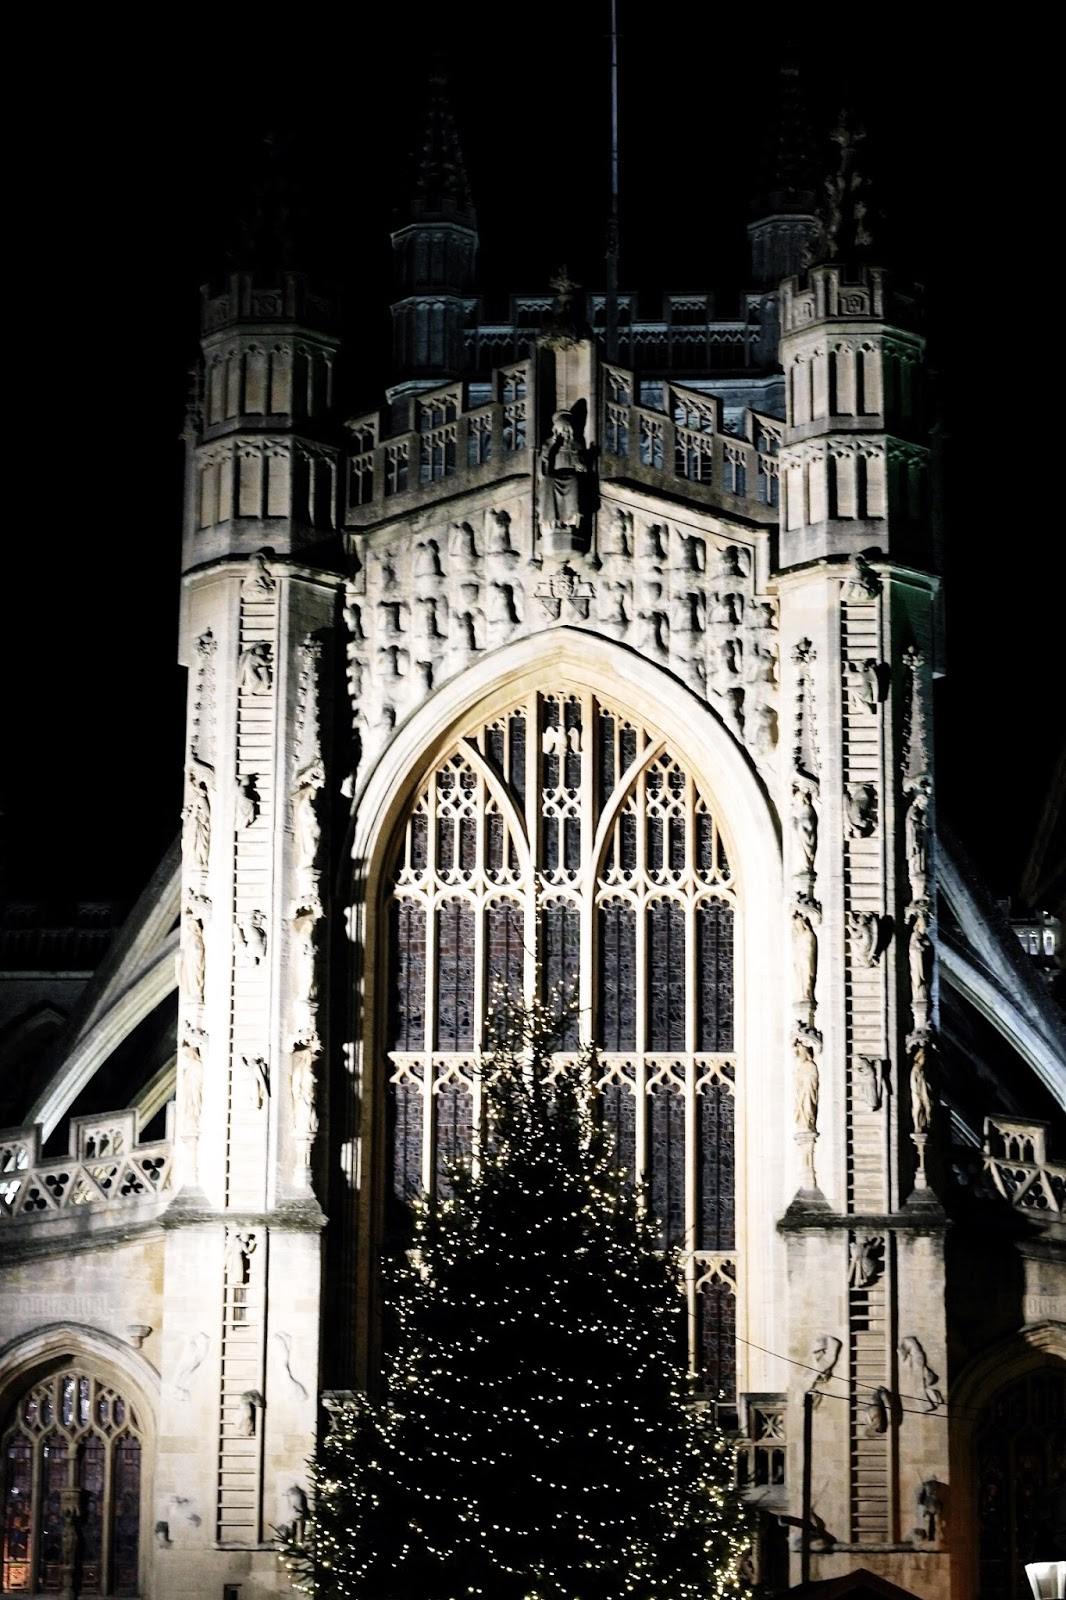 Bath Abbey architecture by night at Christmas